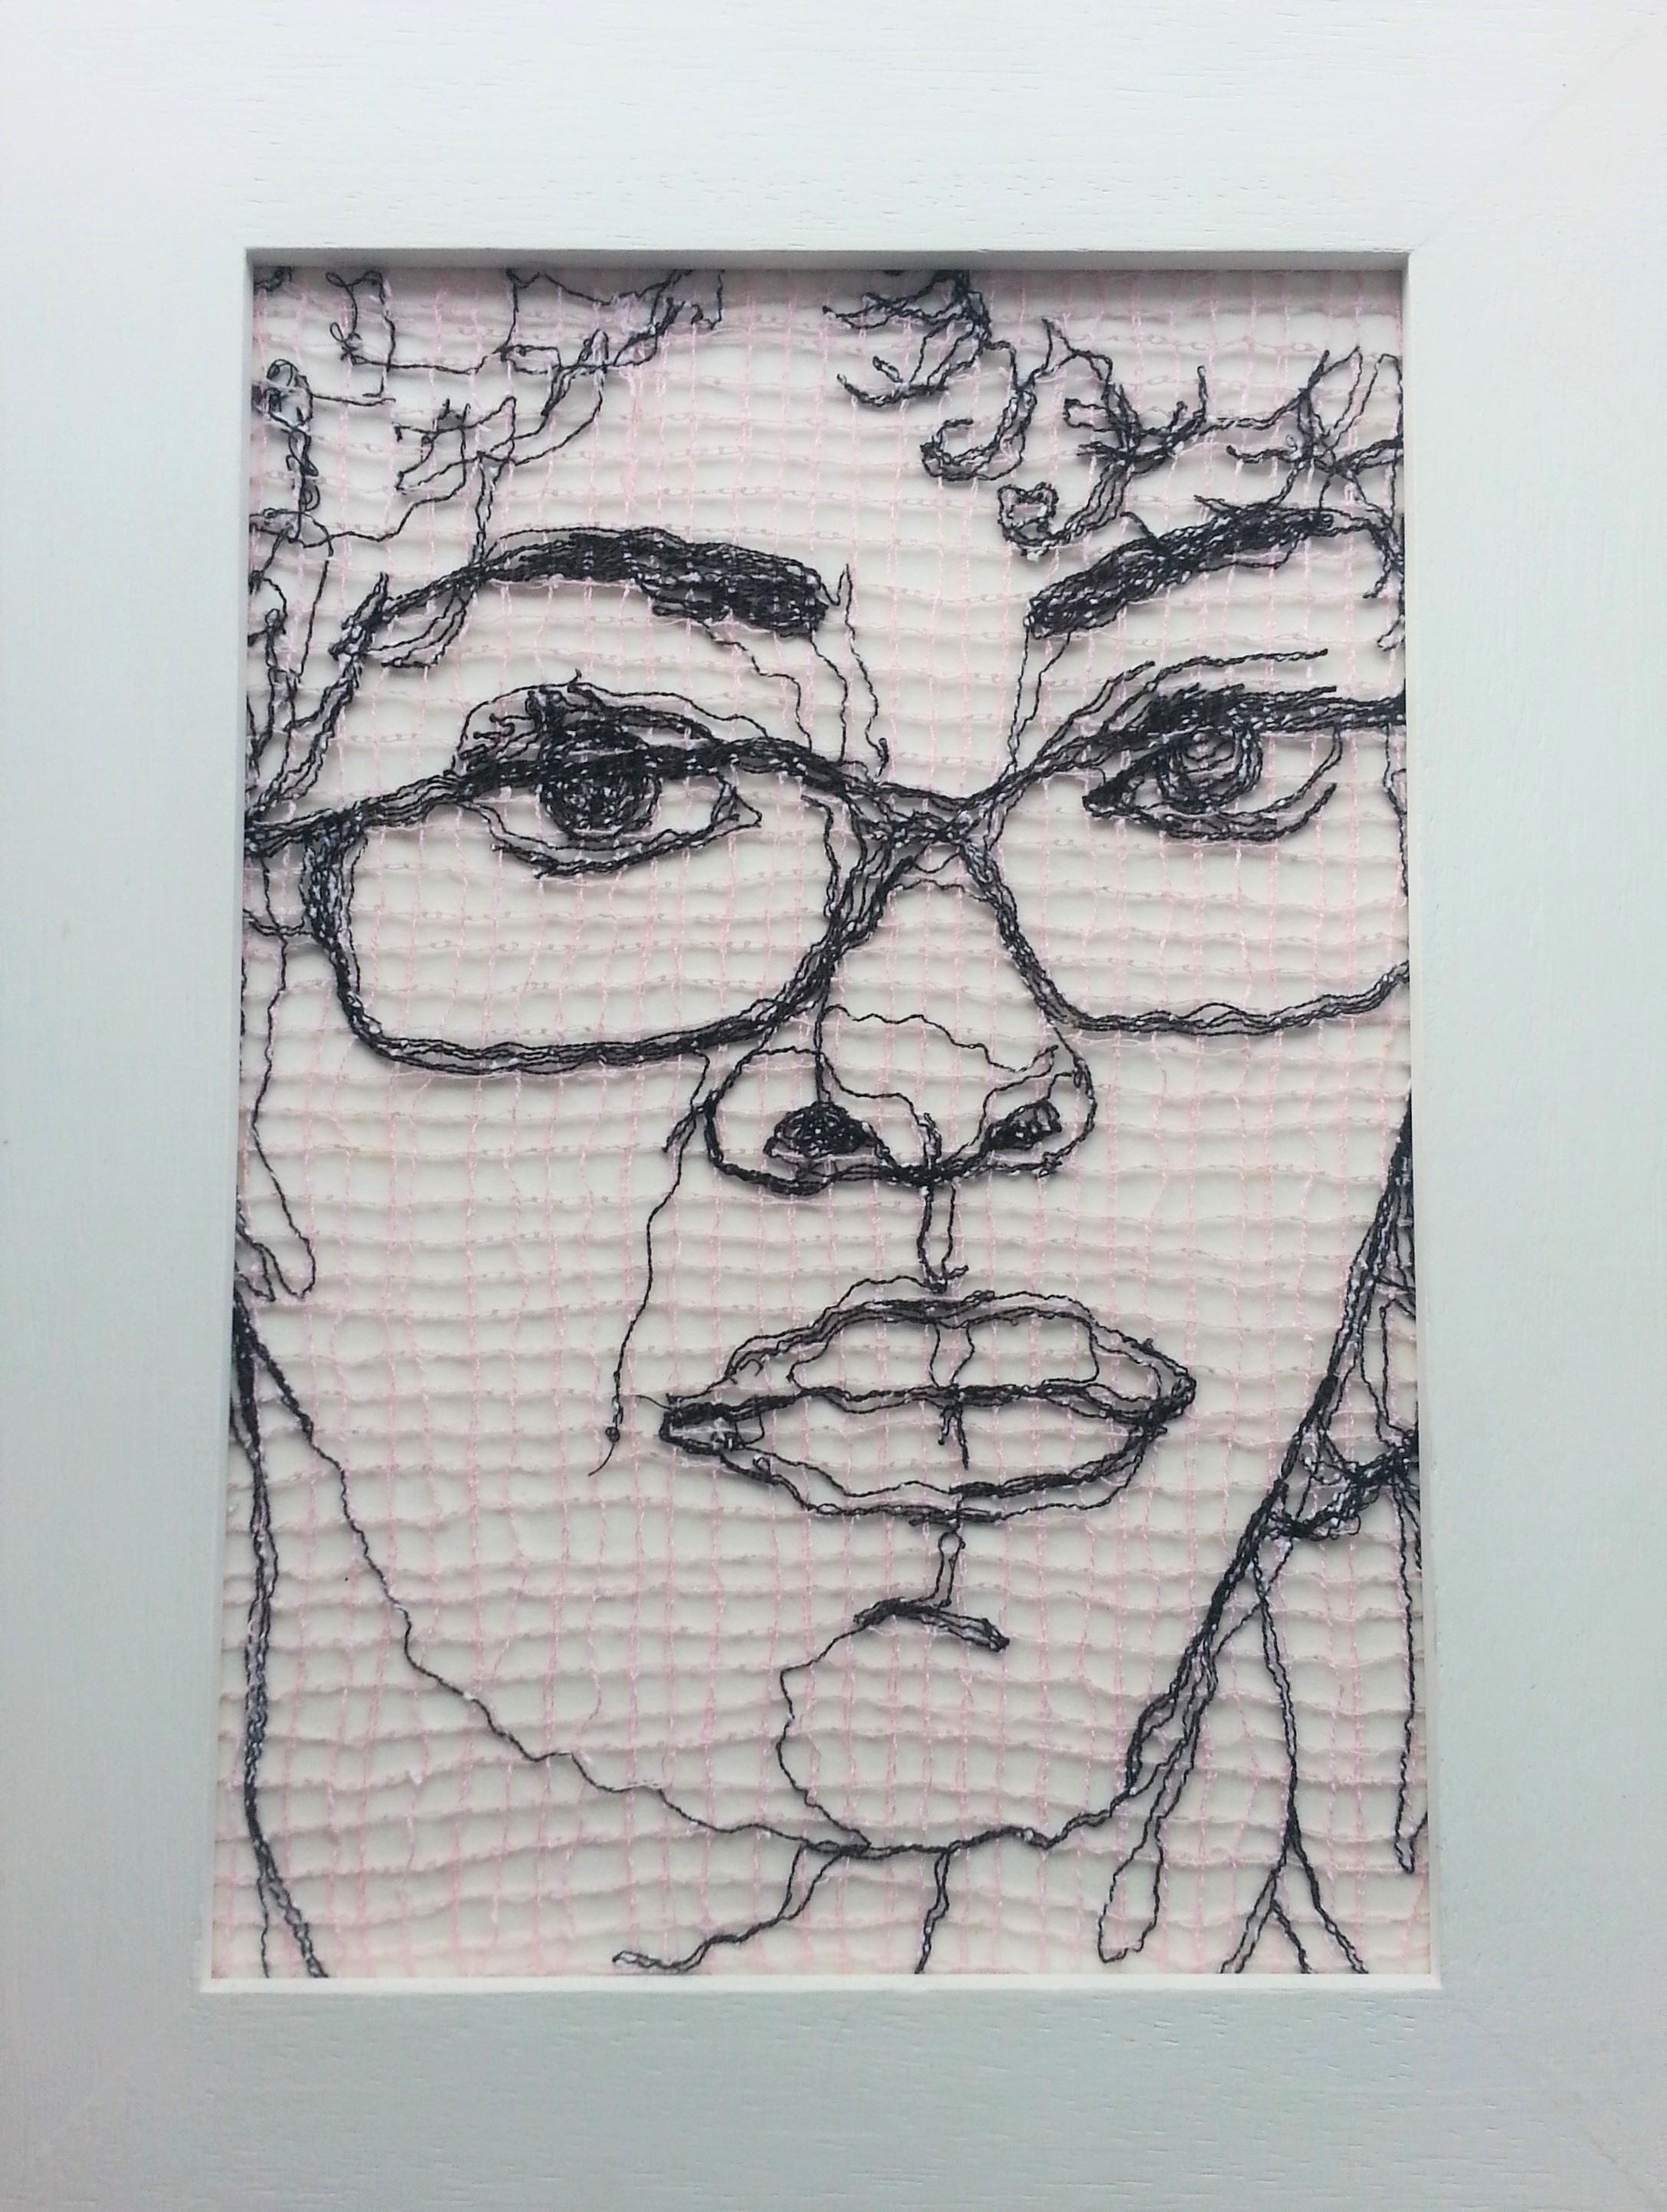 Precedent, 2011 by Lee Devonish. Machine stitched thread drawing.